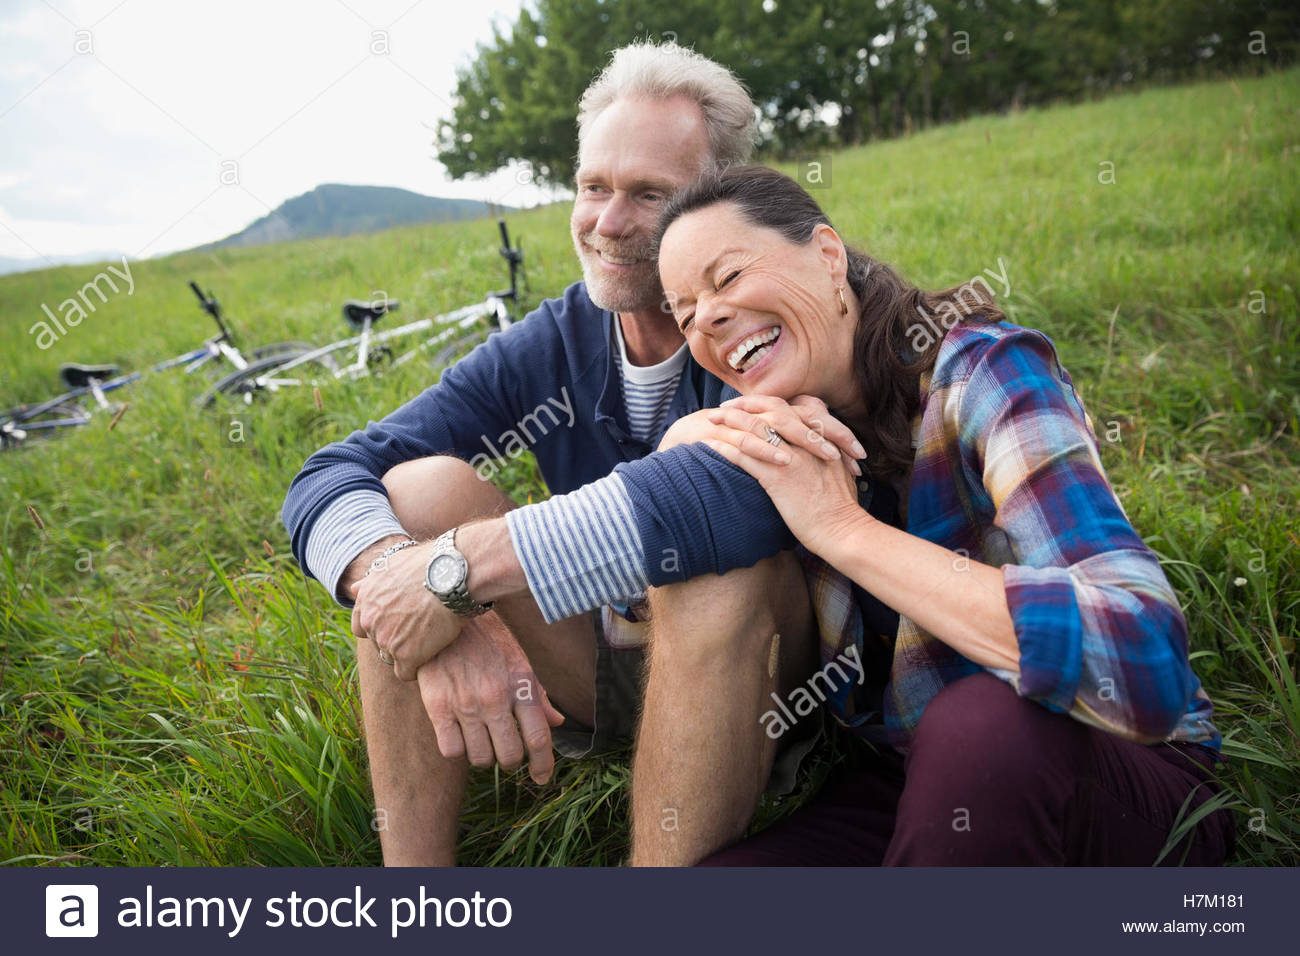 Laughing senior couple relaxing near mountain bikes in remote rural field - Stock Image